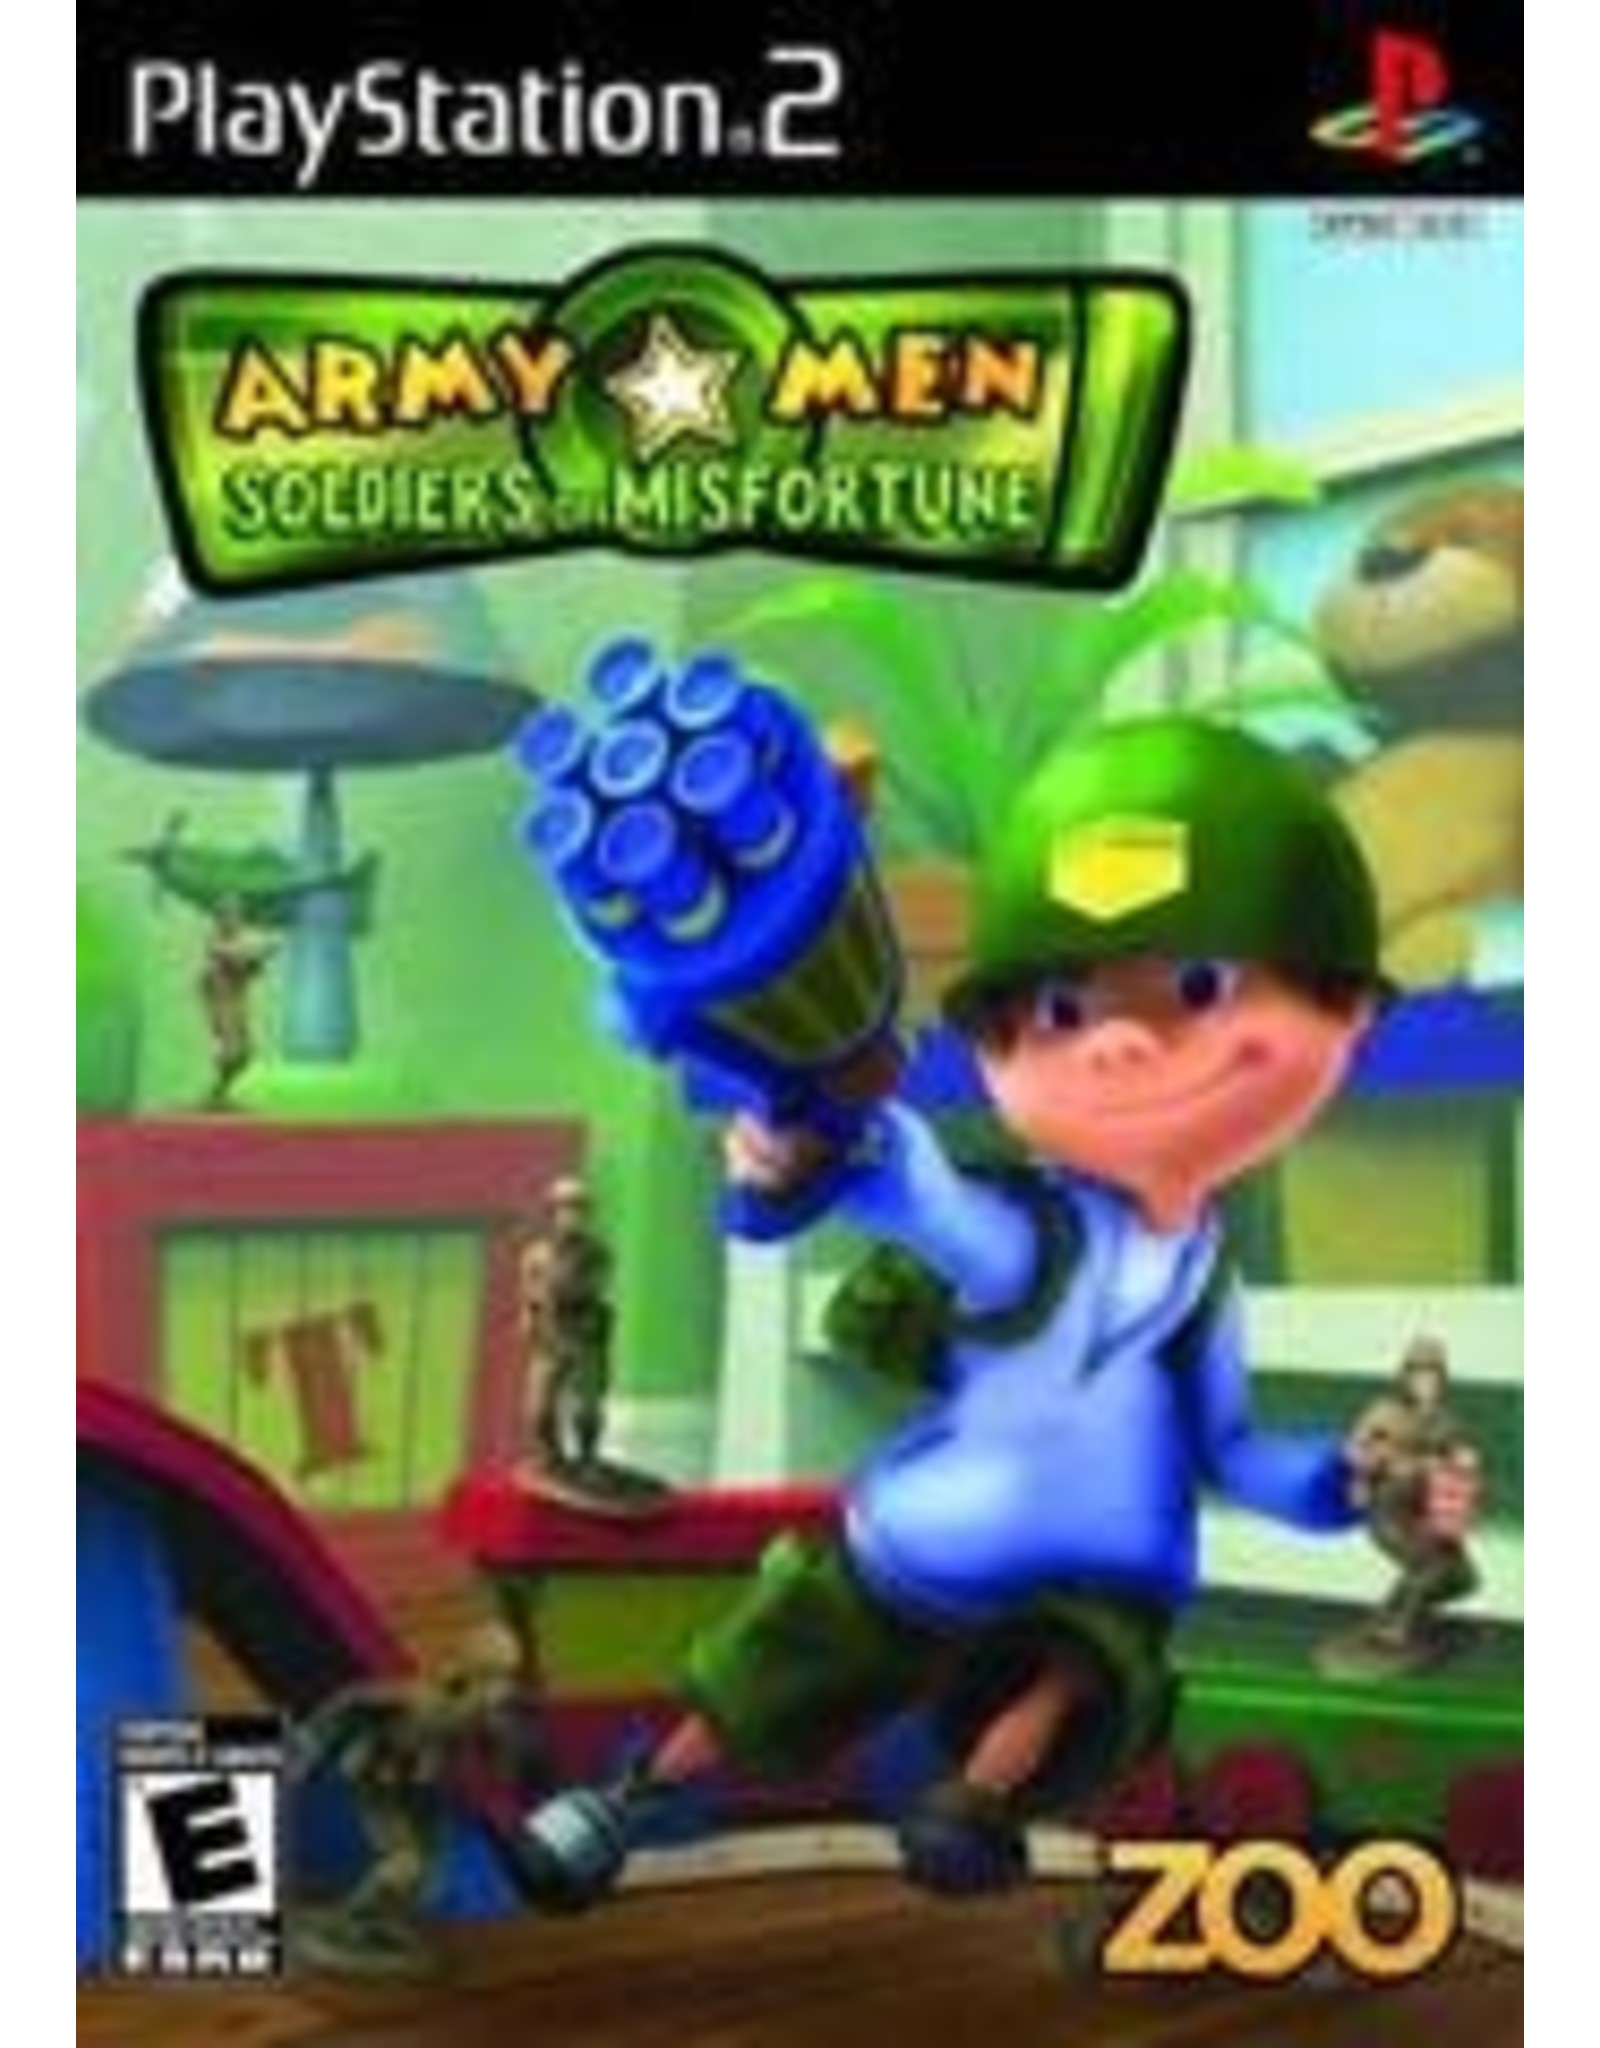 Playstation 2 Army Men Soldiers of Misfortune